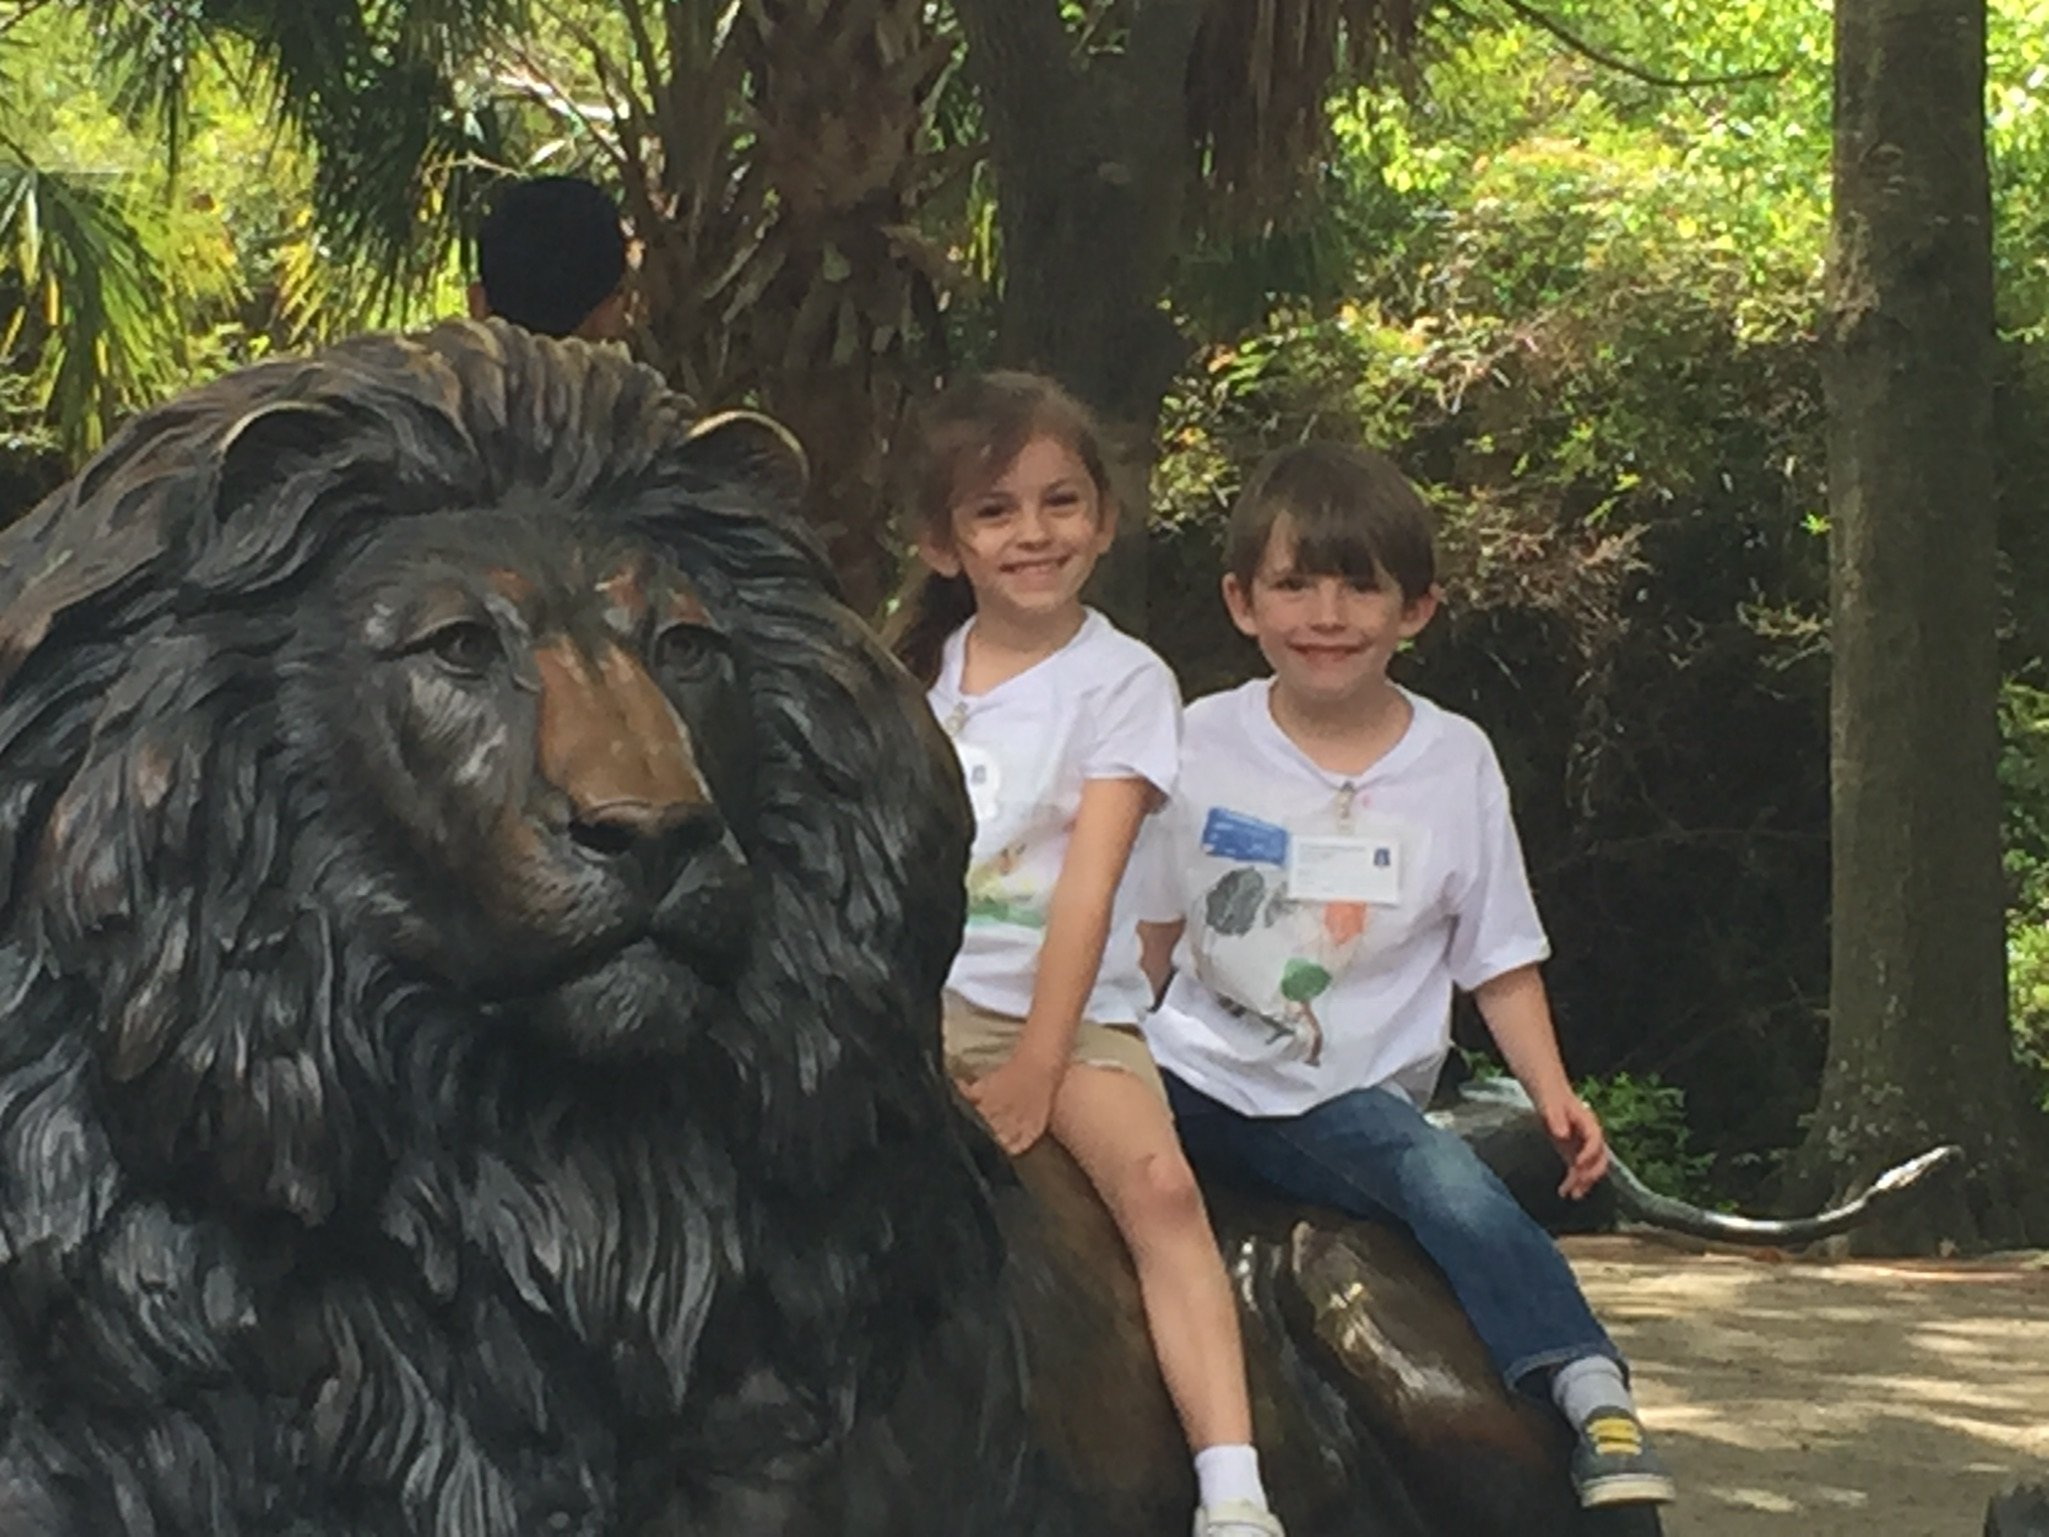 Went on down to the Audubon Zoo… and stayed on Monkey Hill!